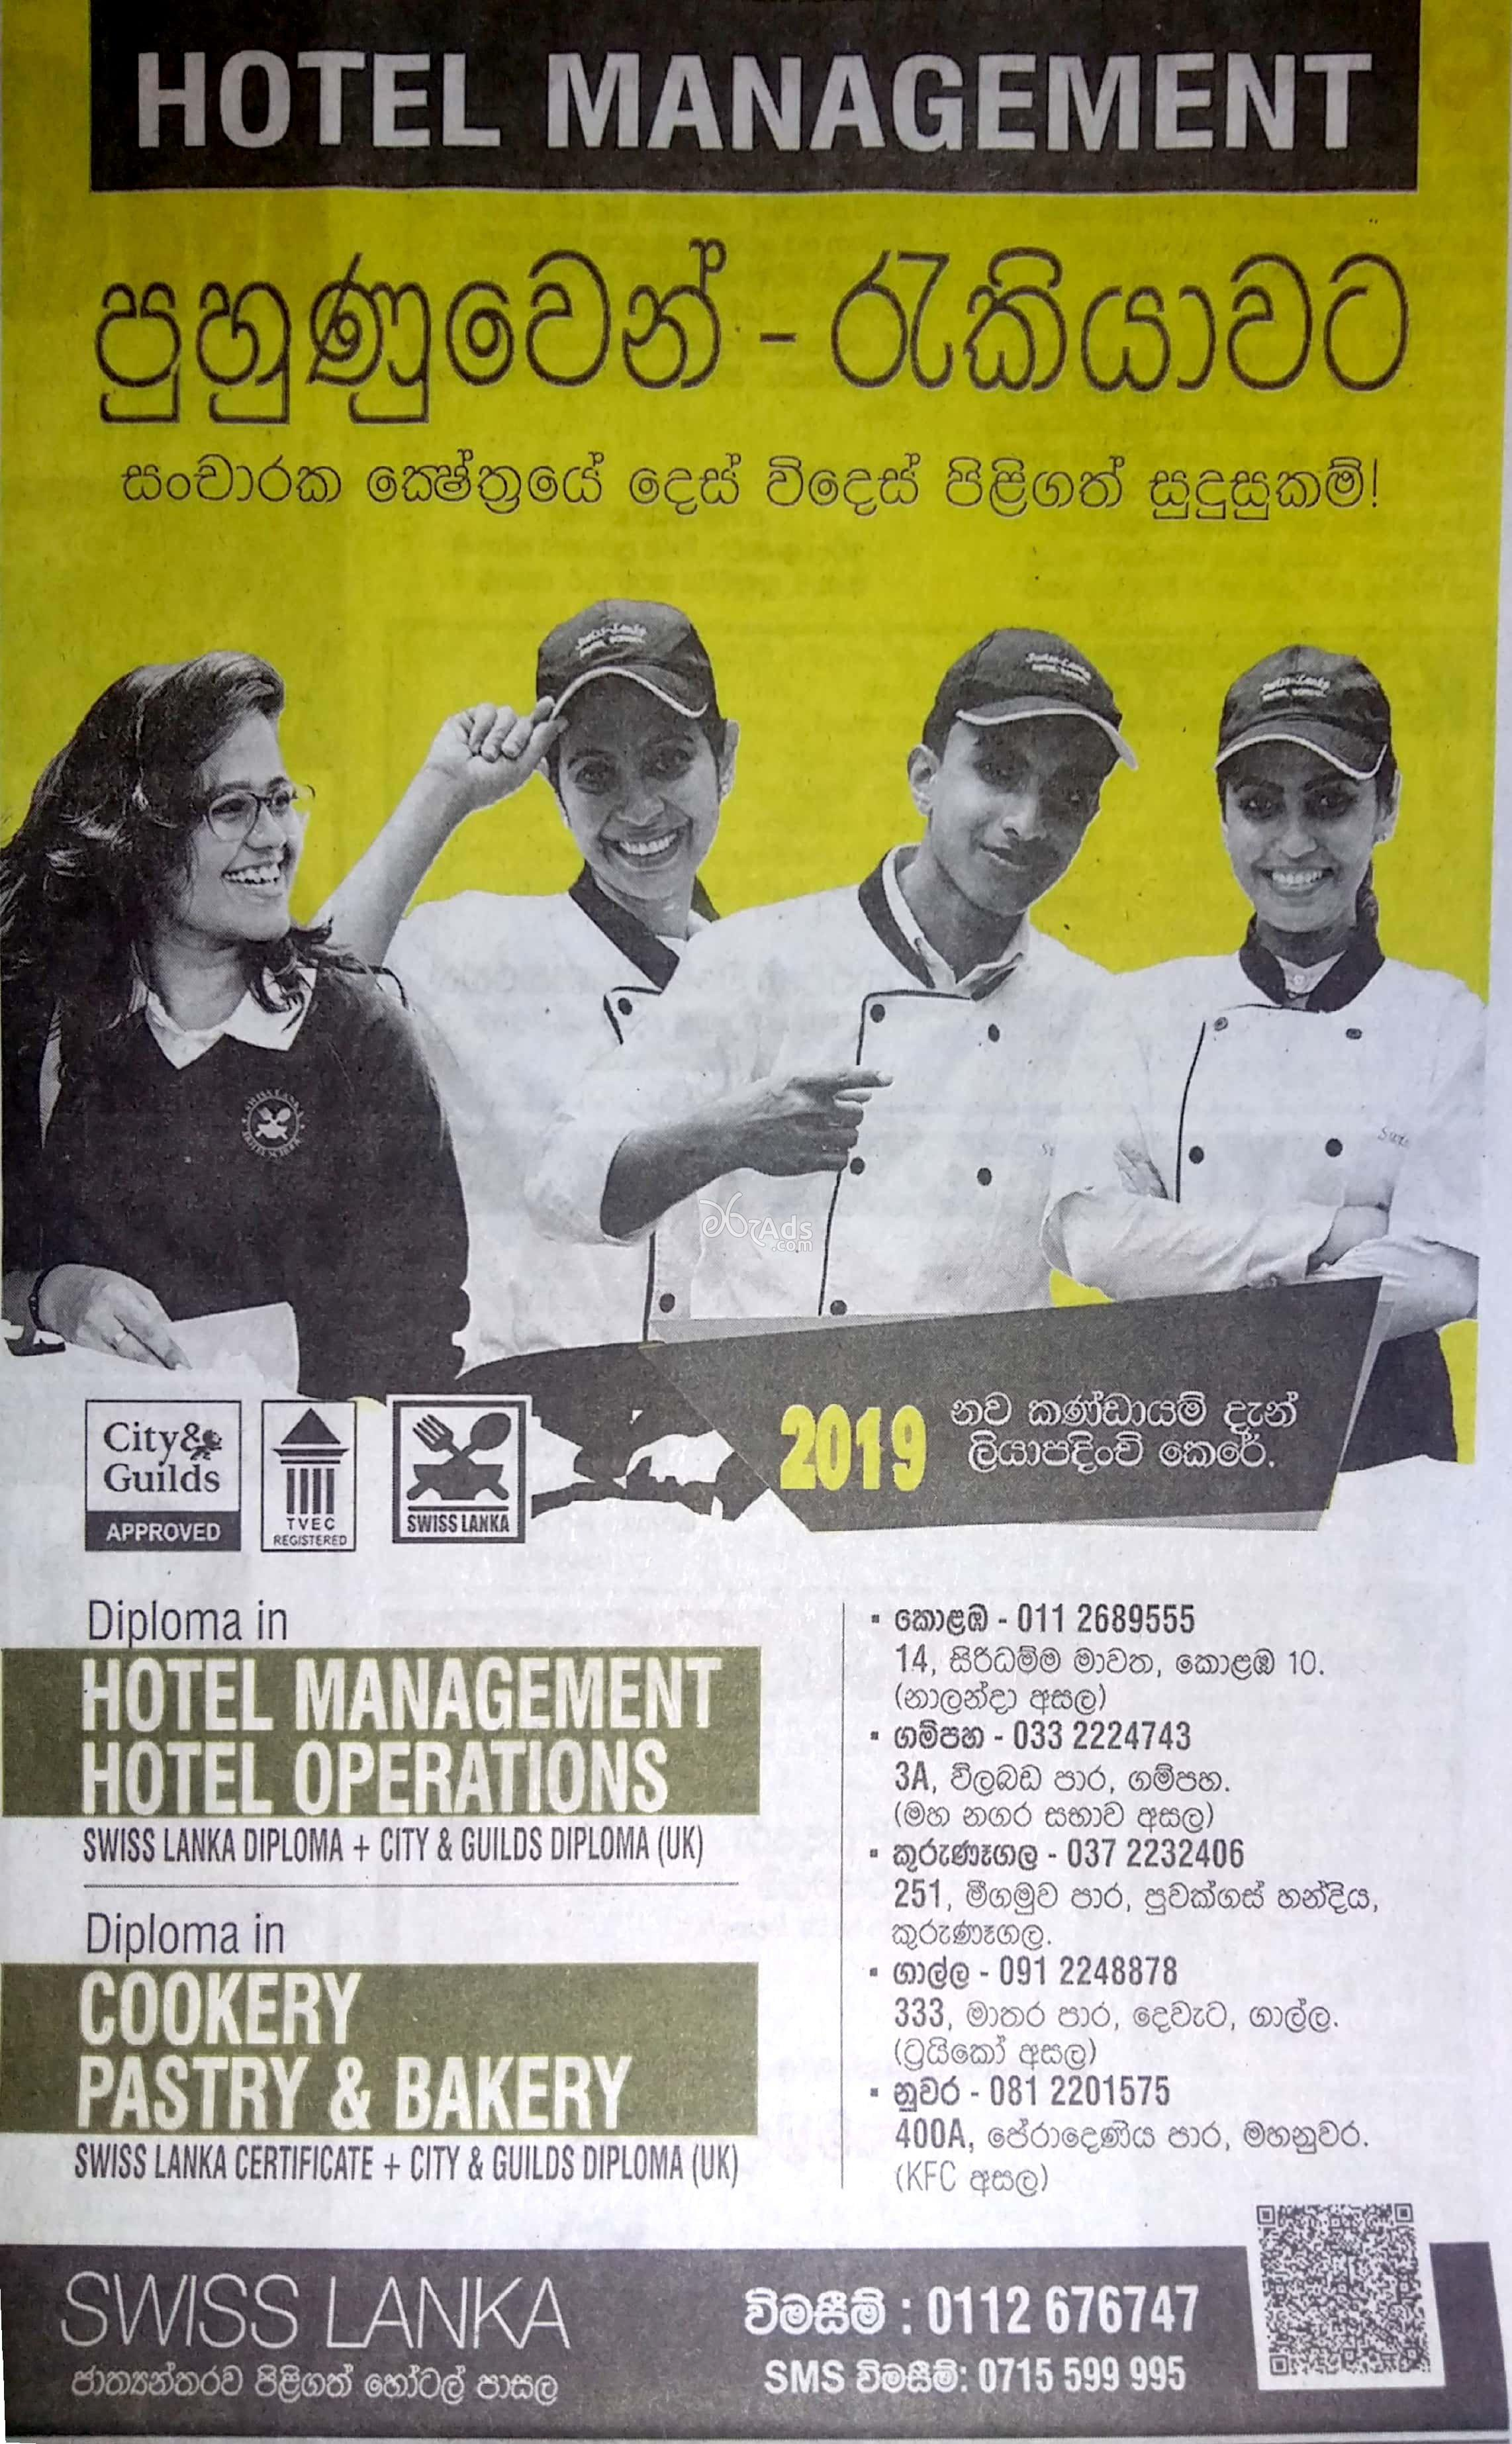 Diploma in Hotel Management, Hotel Operations, Cookery, Pastry & Bakery at Swiss Lanka Hotel School